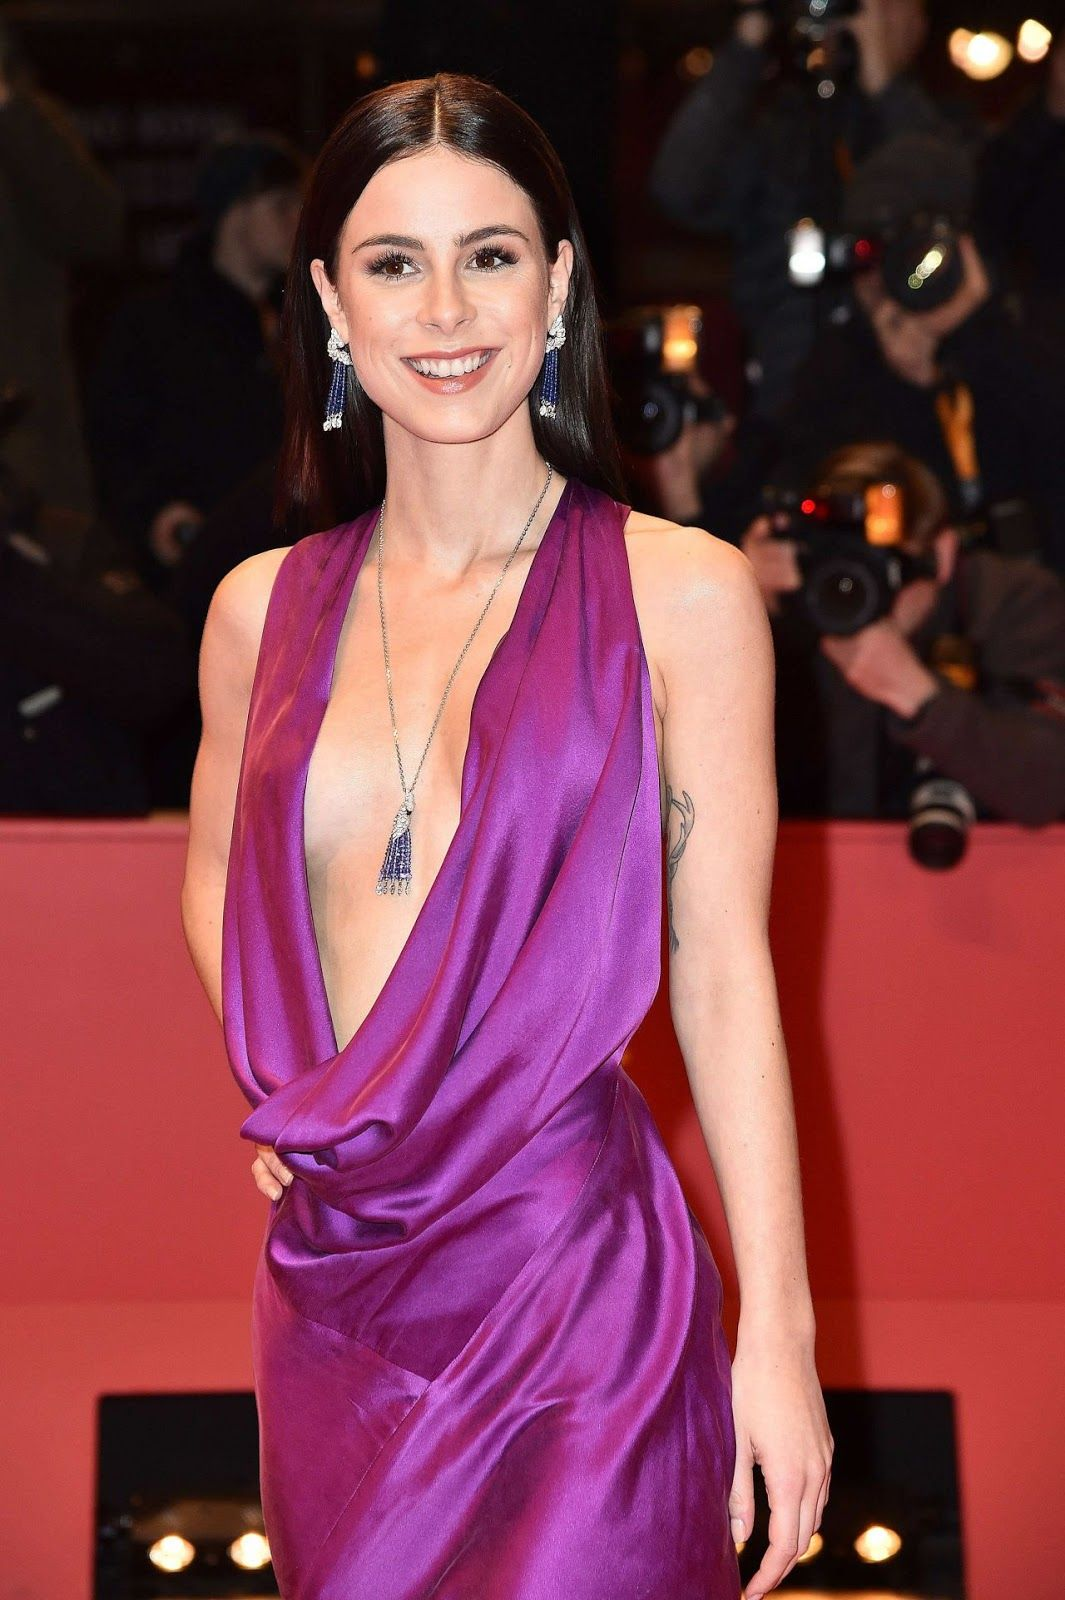 Lena Meyer Landrut Sexy Cleavage Picture | Beauties | Hot ...